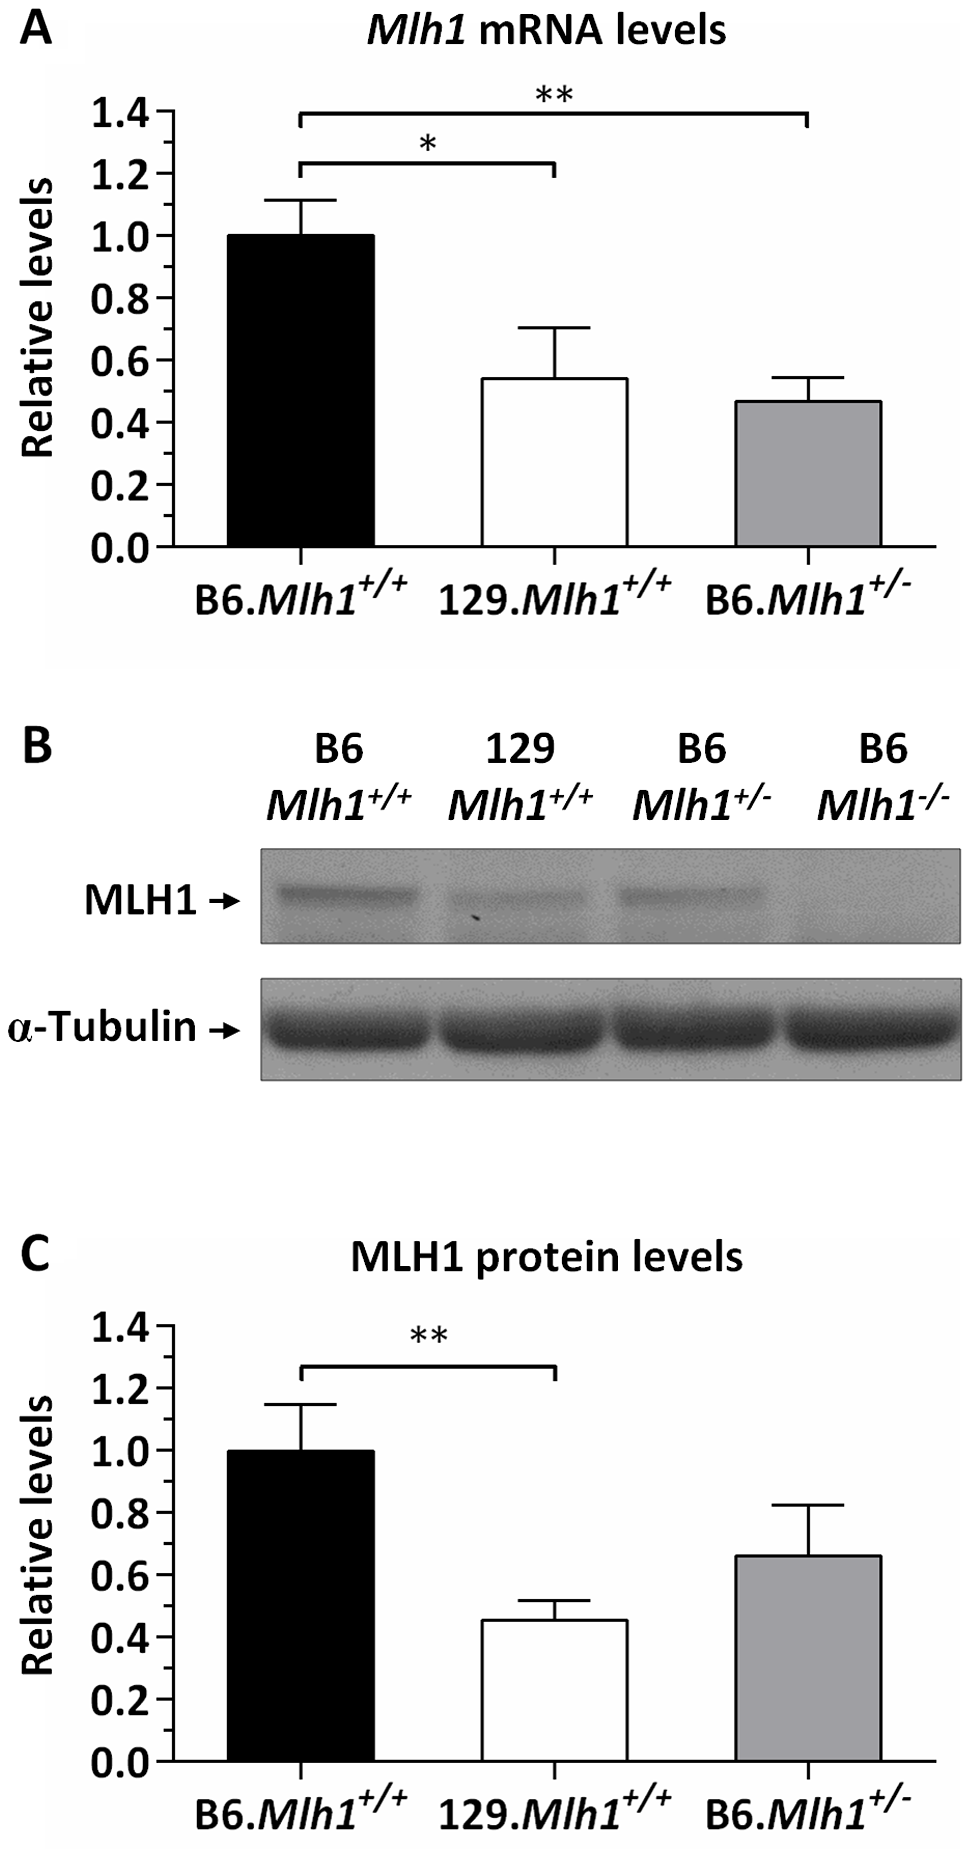 Reduced MLH1 expression in 129 versus B6 mice.